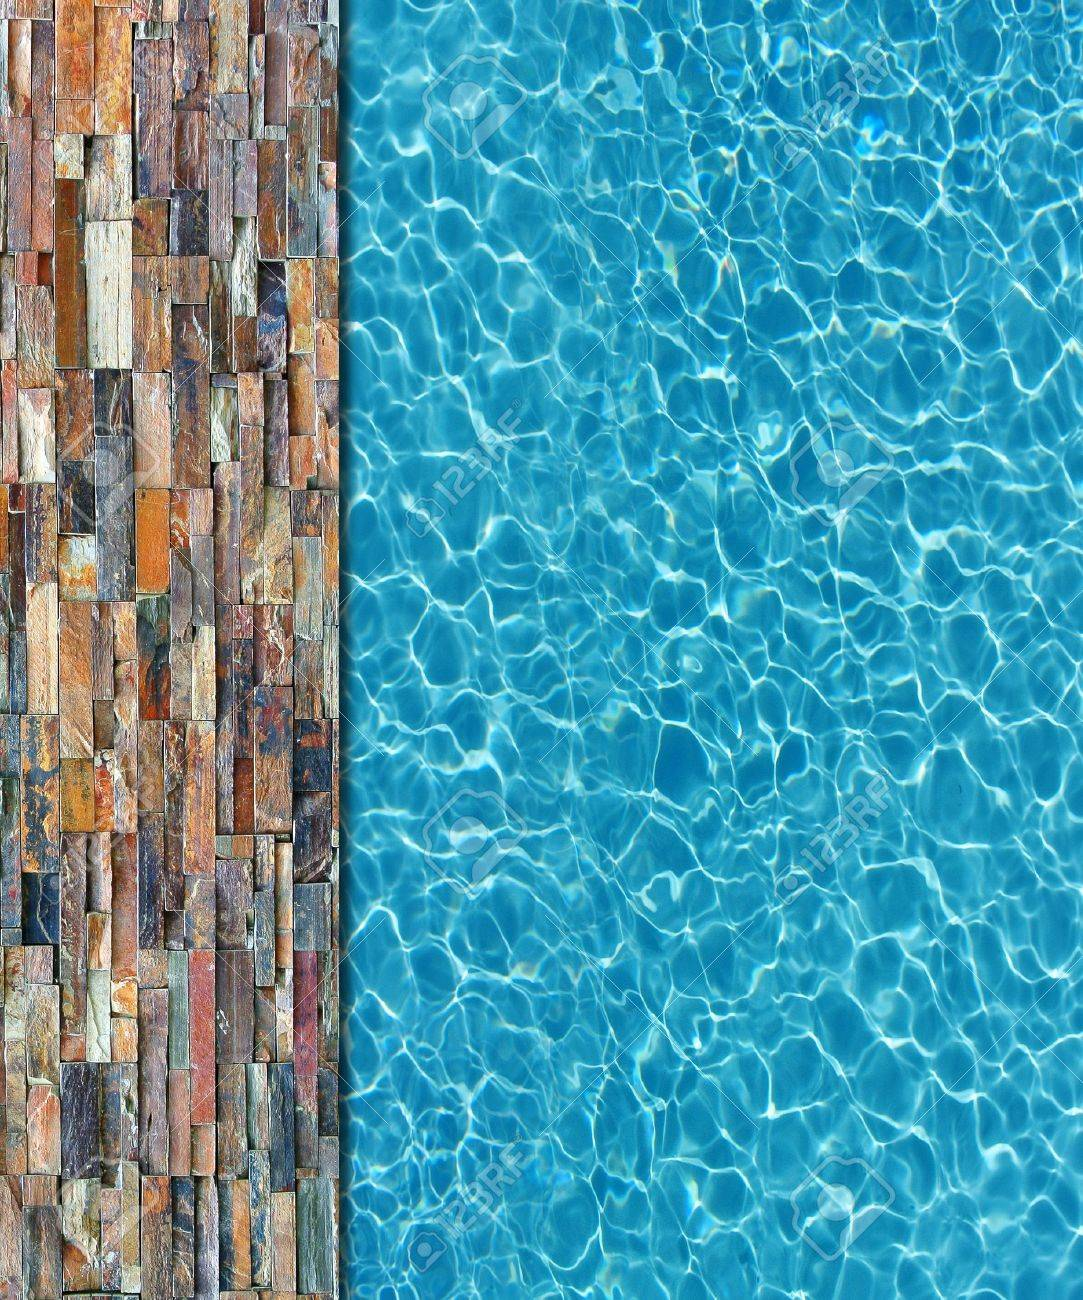 Swimming Pool Background cool water in swimming pool background stock photo, picture and